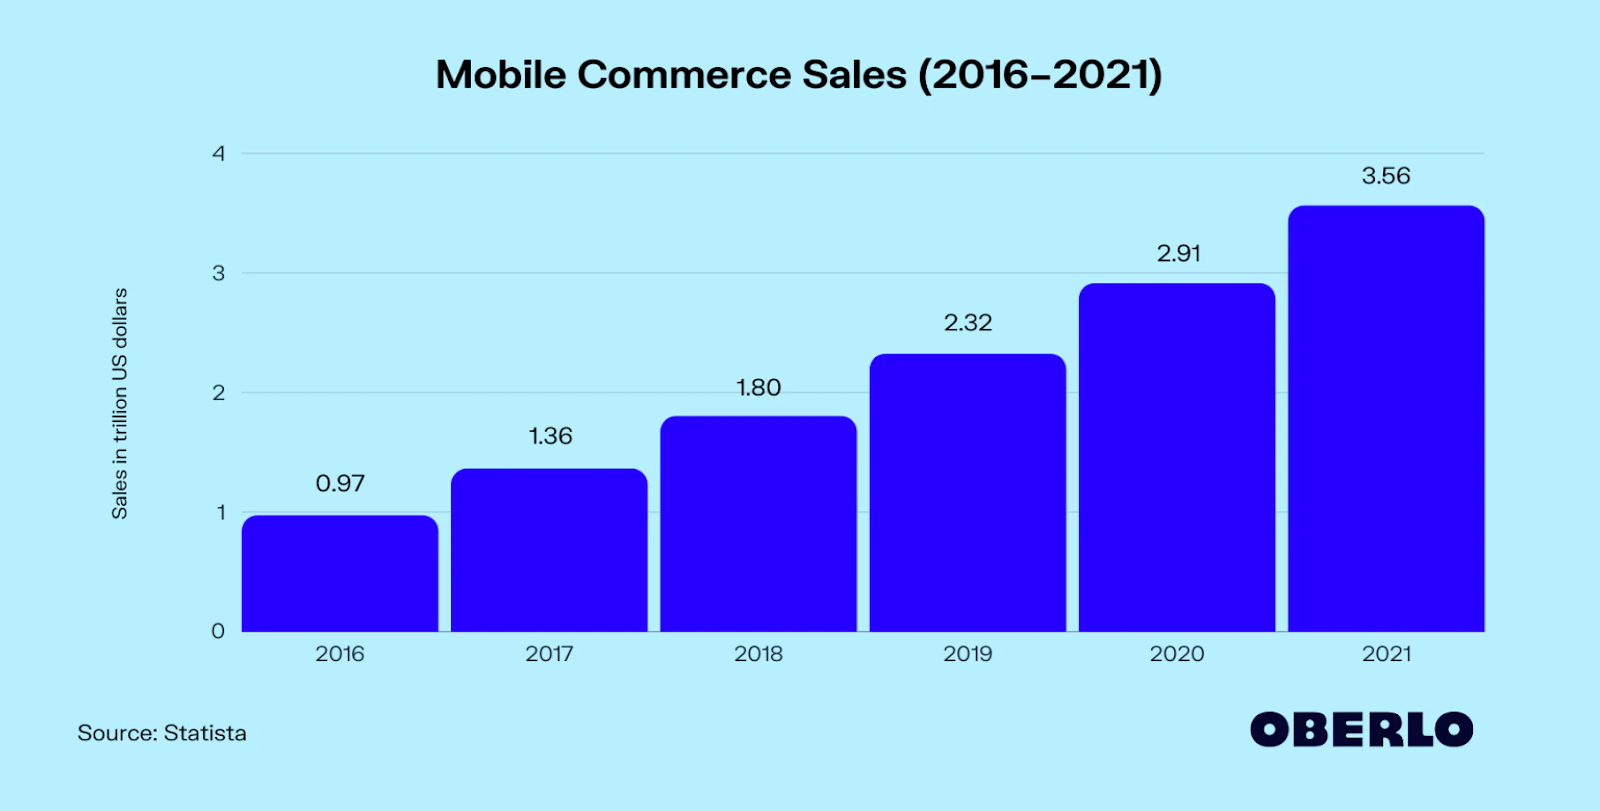 mobile commerce sales 2021